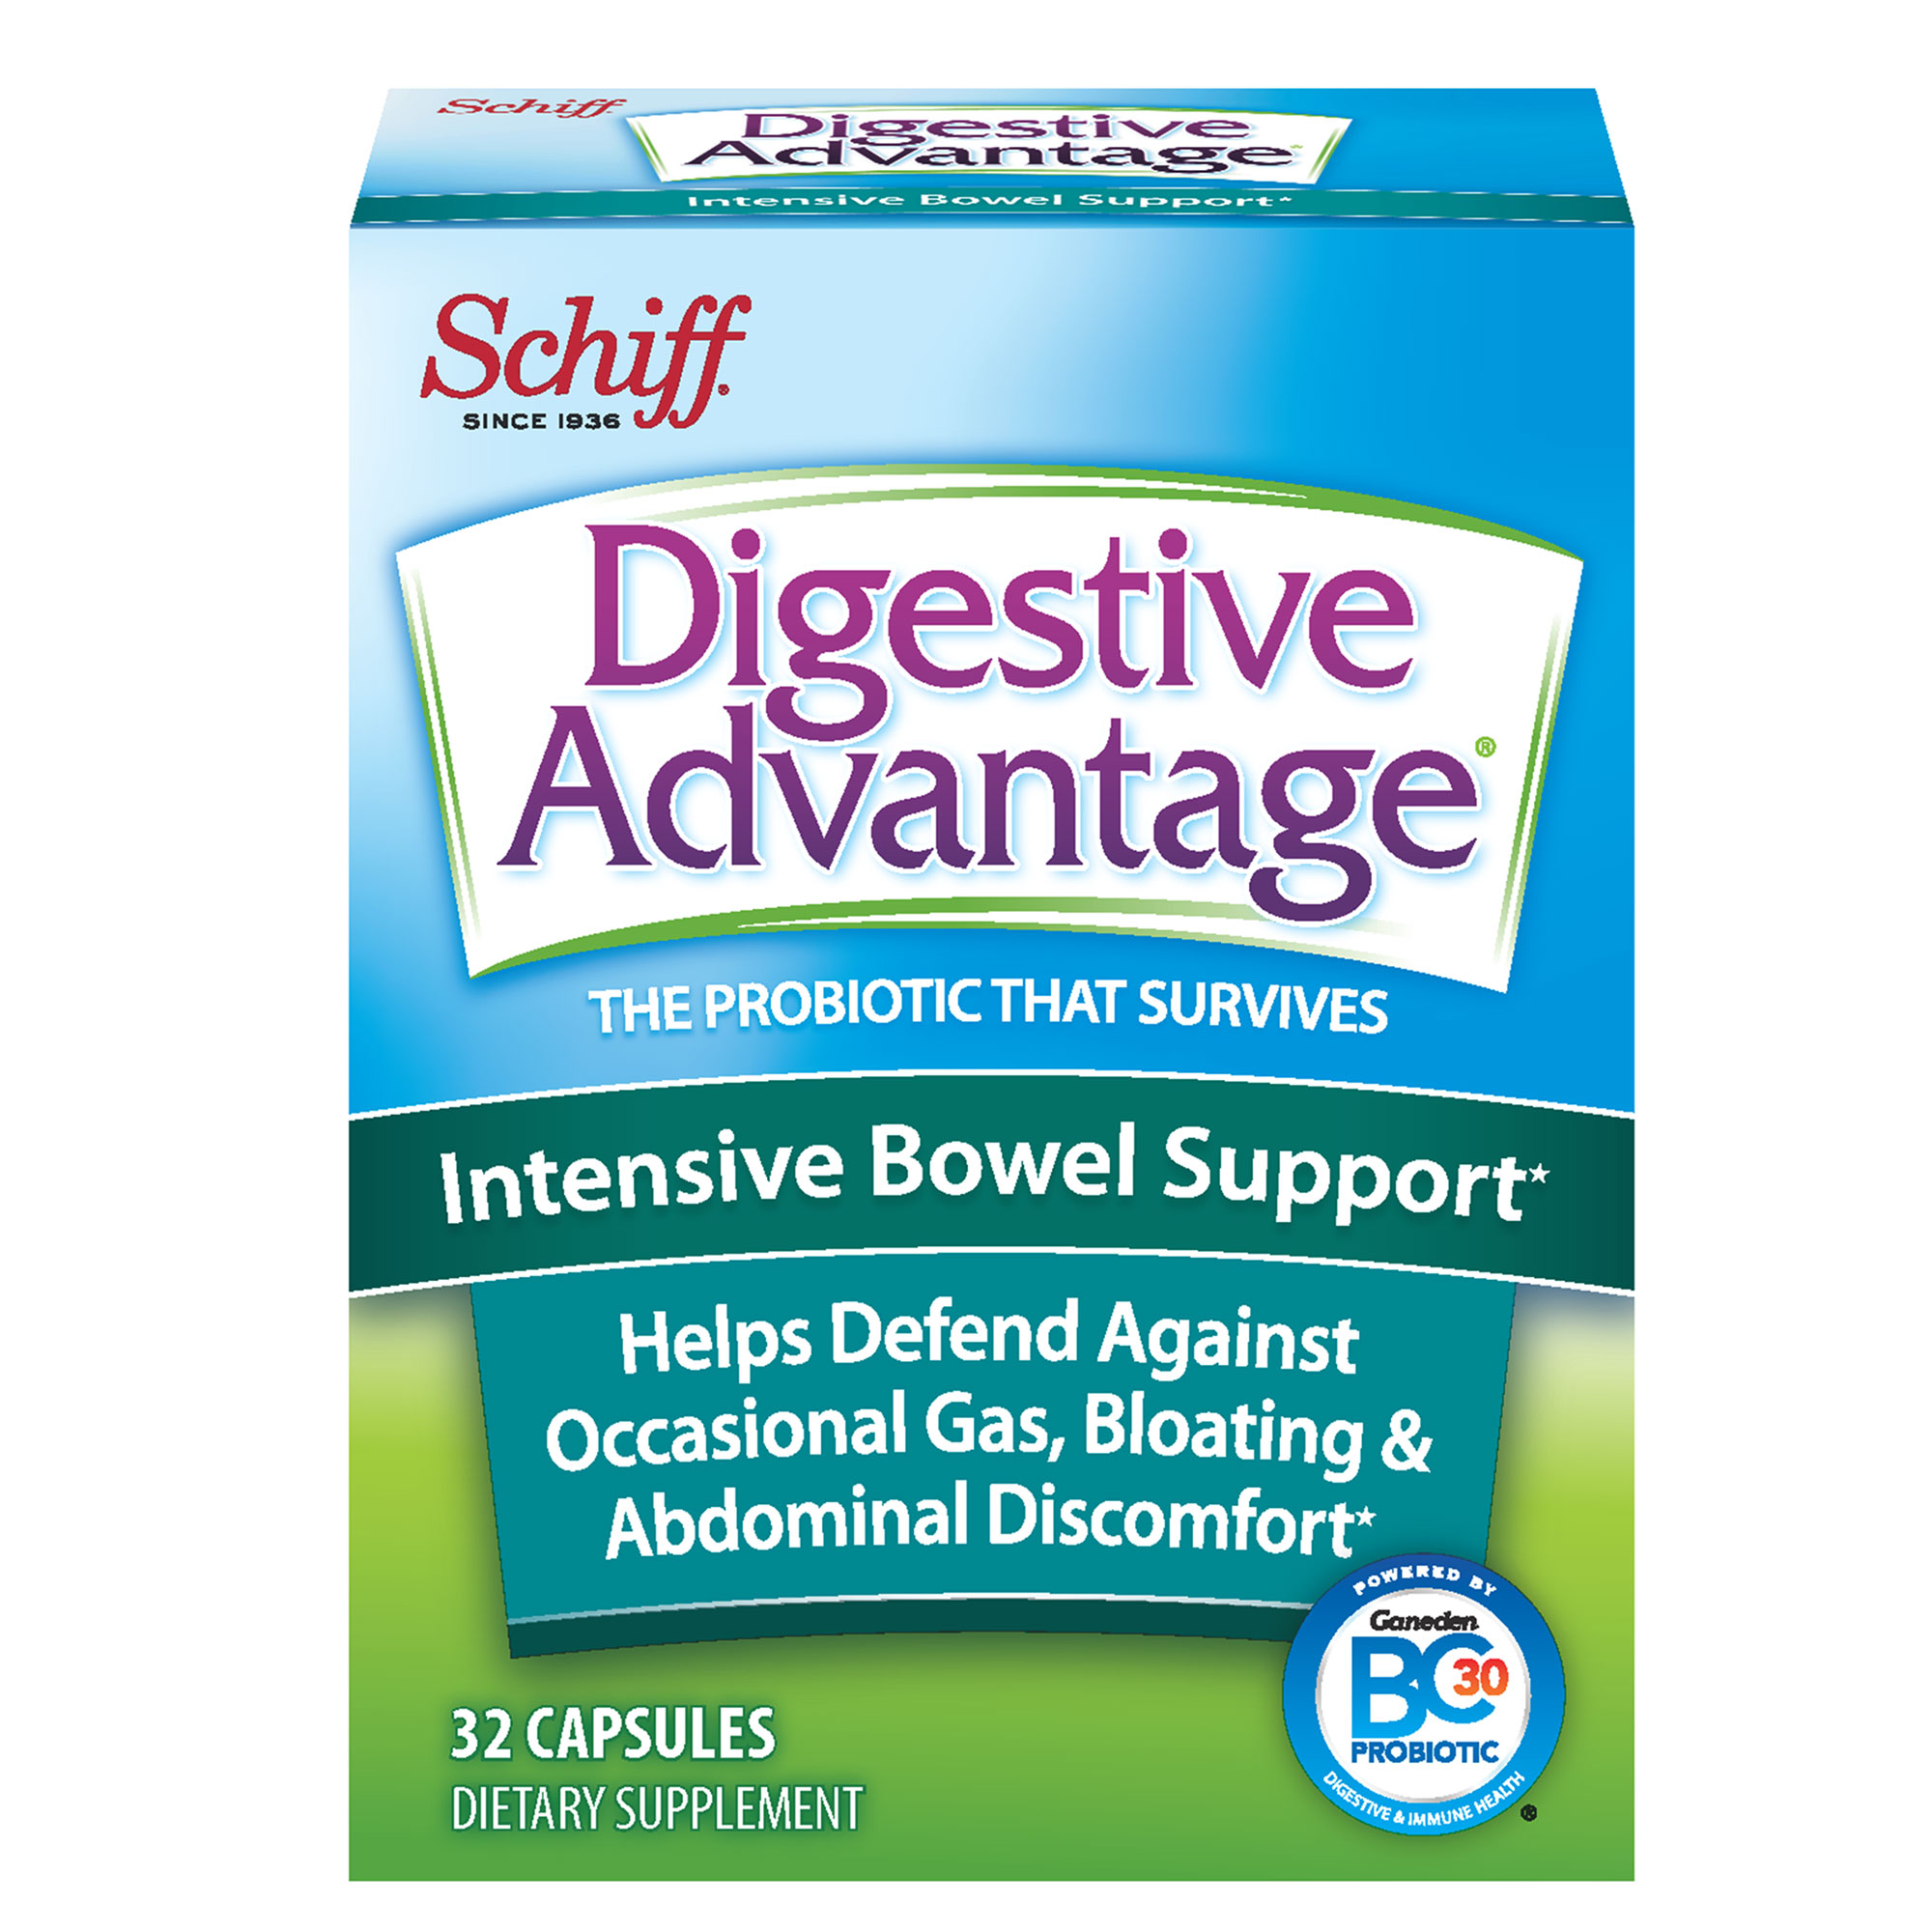 Digestive Advantage Intensive Bowel Support, 32 Capsules